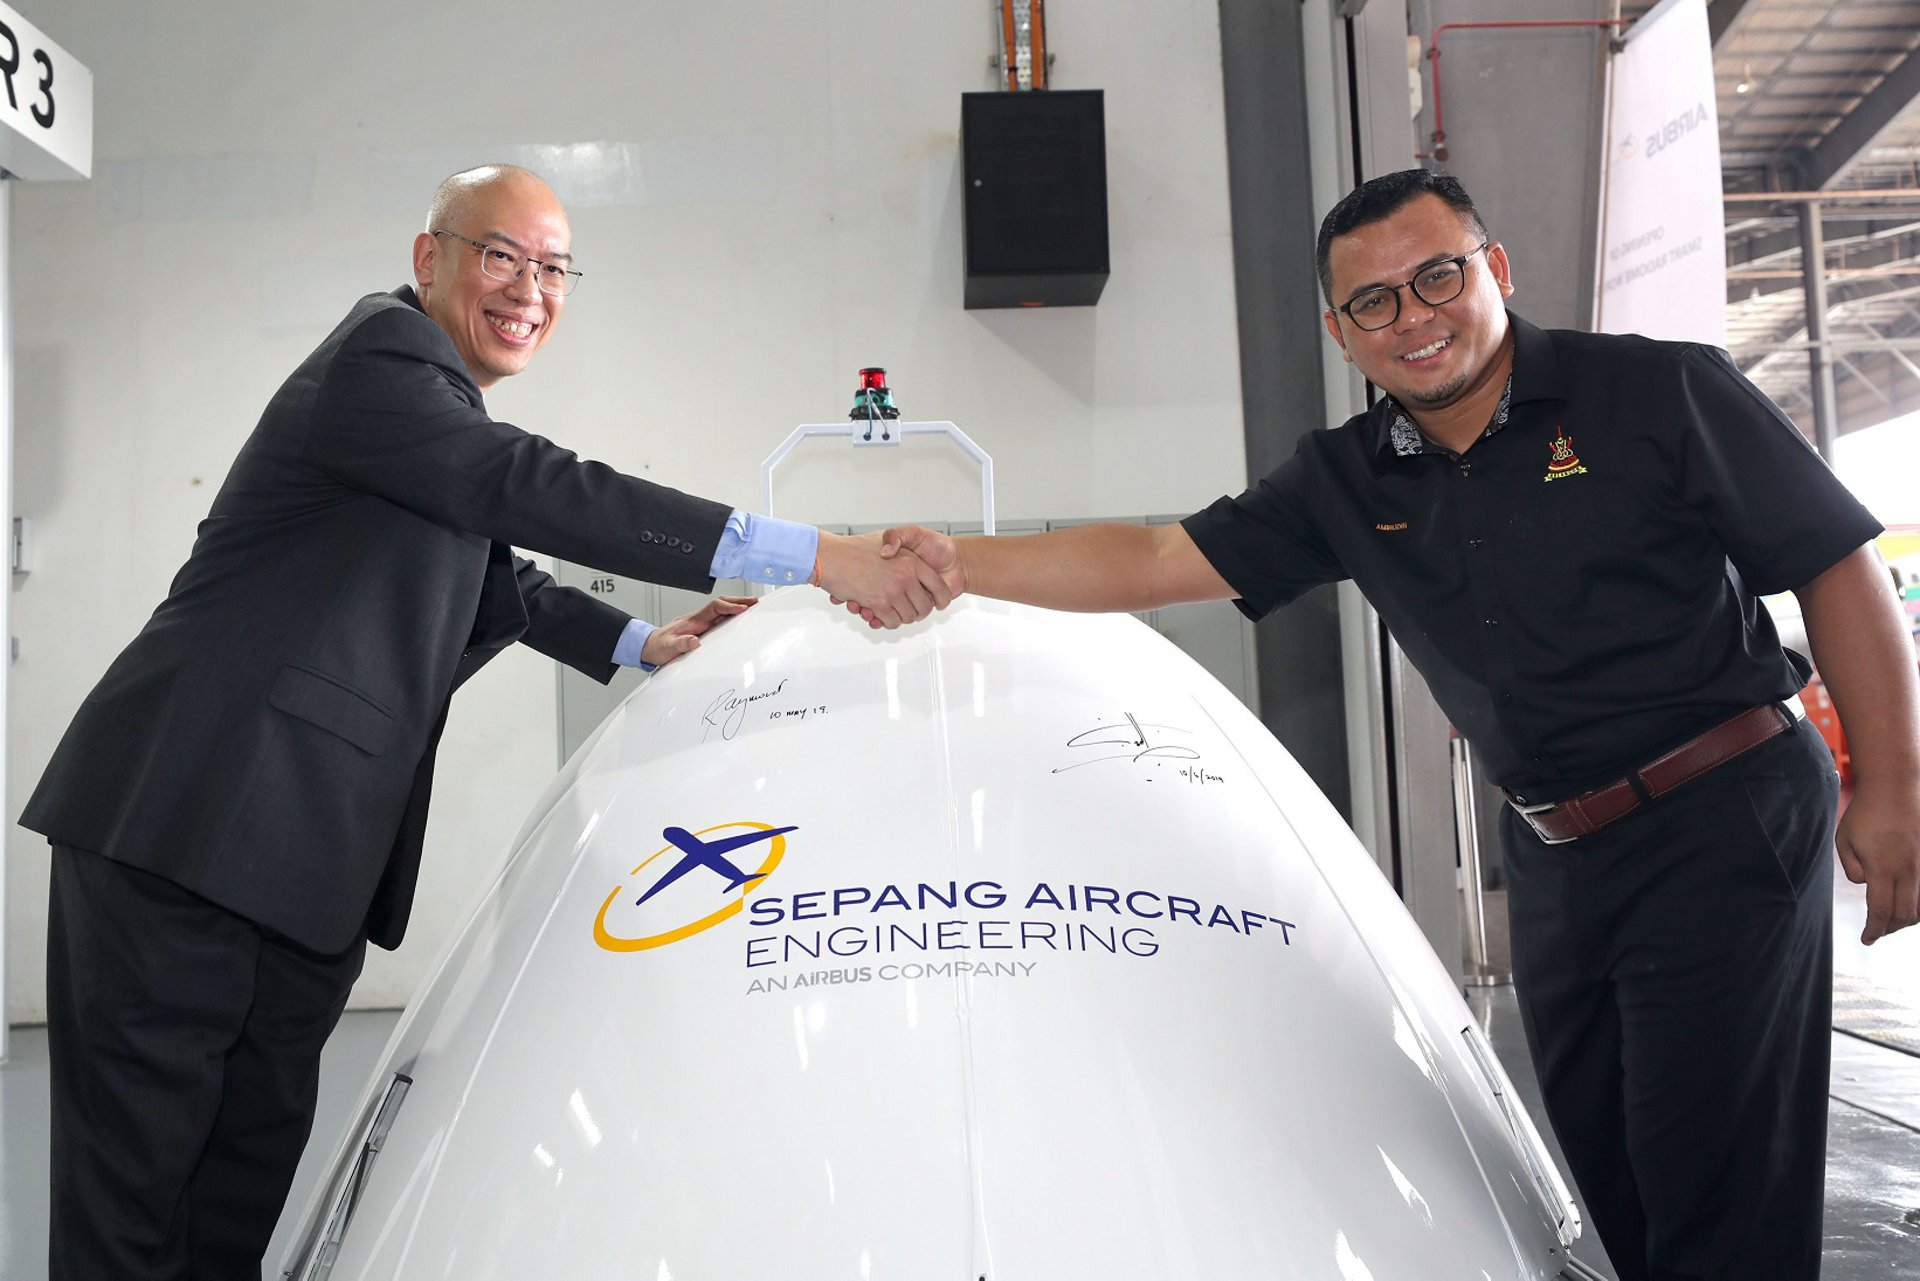 Raymond Lim, CEO of Sepang Aircraft Engineering (SAE) and Amirudin bin Shari, Chief Minister of Selangor state, Malaysia, at the launch of the SAE Smart Radome Workshop